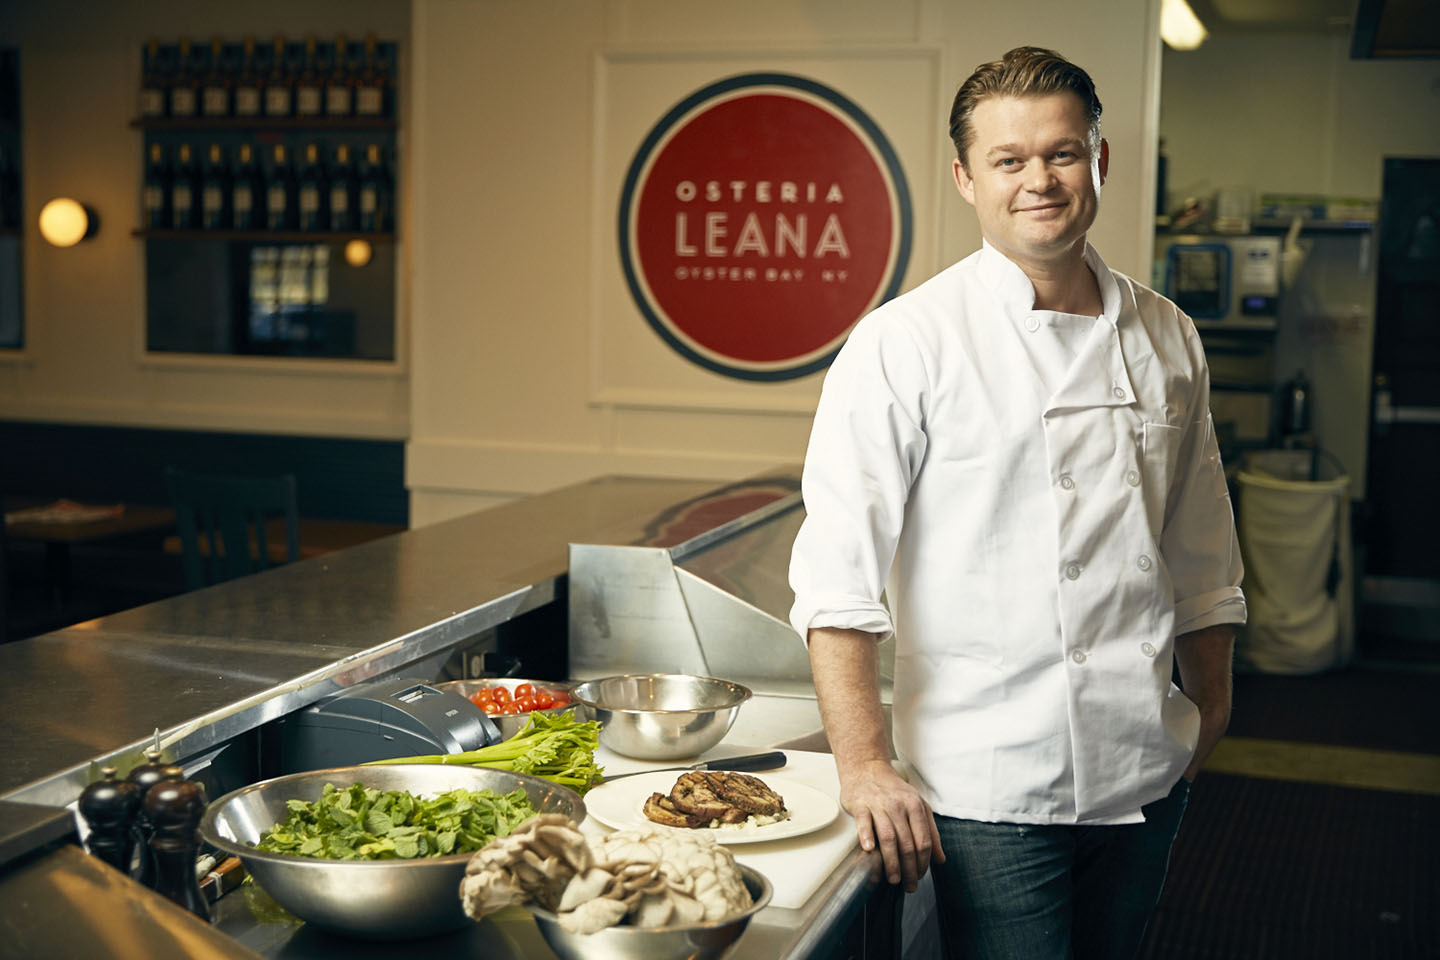 Peter Van Der Mije '98, chef and owner of Osteria Leana, in Oyster Bay, New York. MATT FURMAN